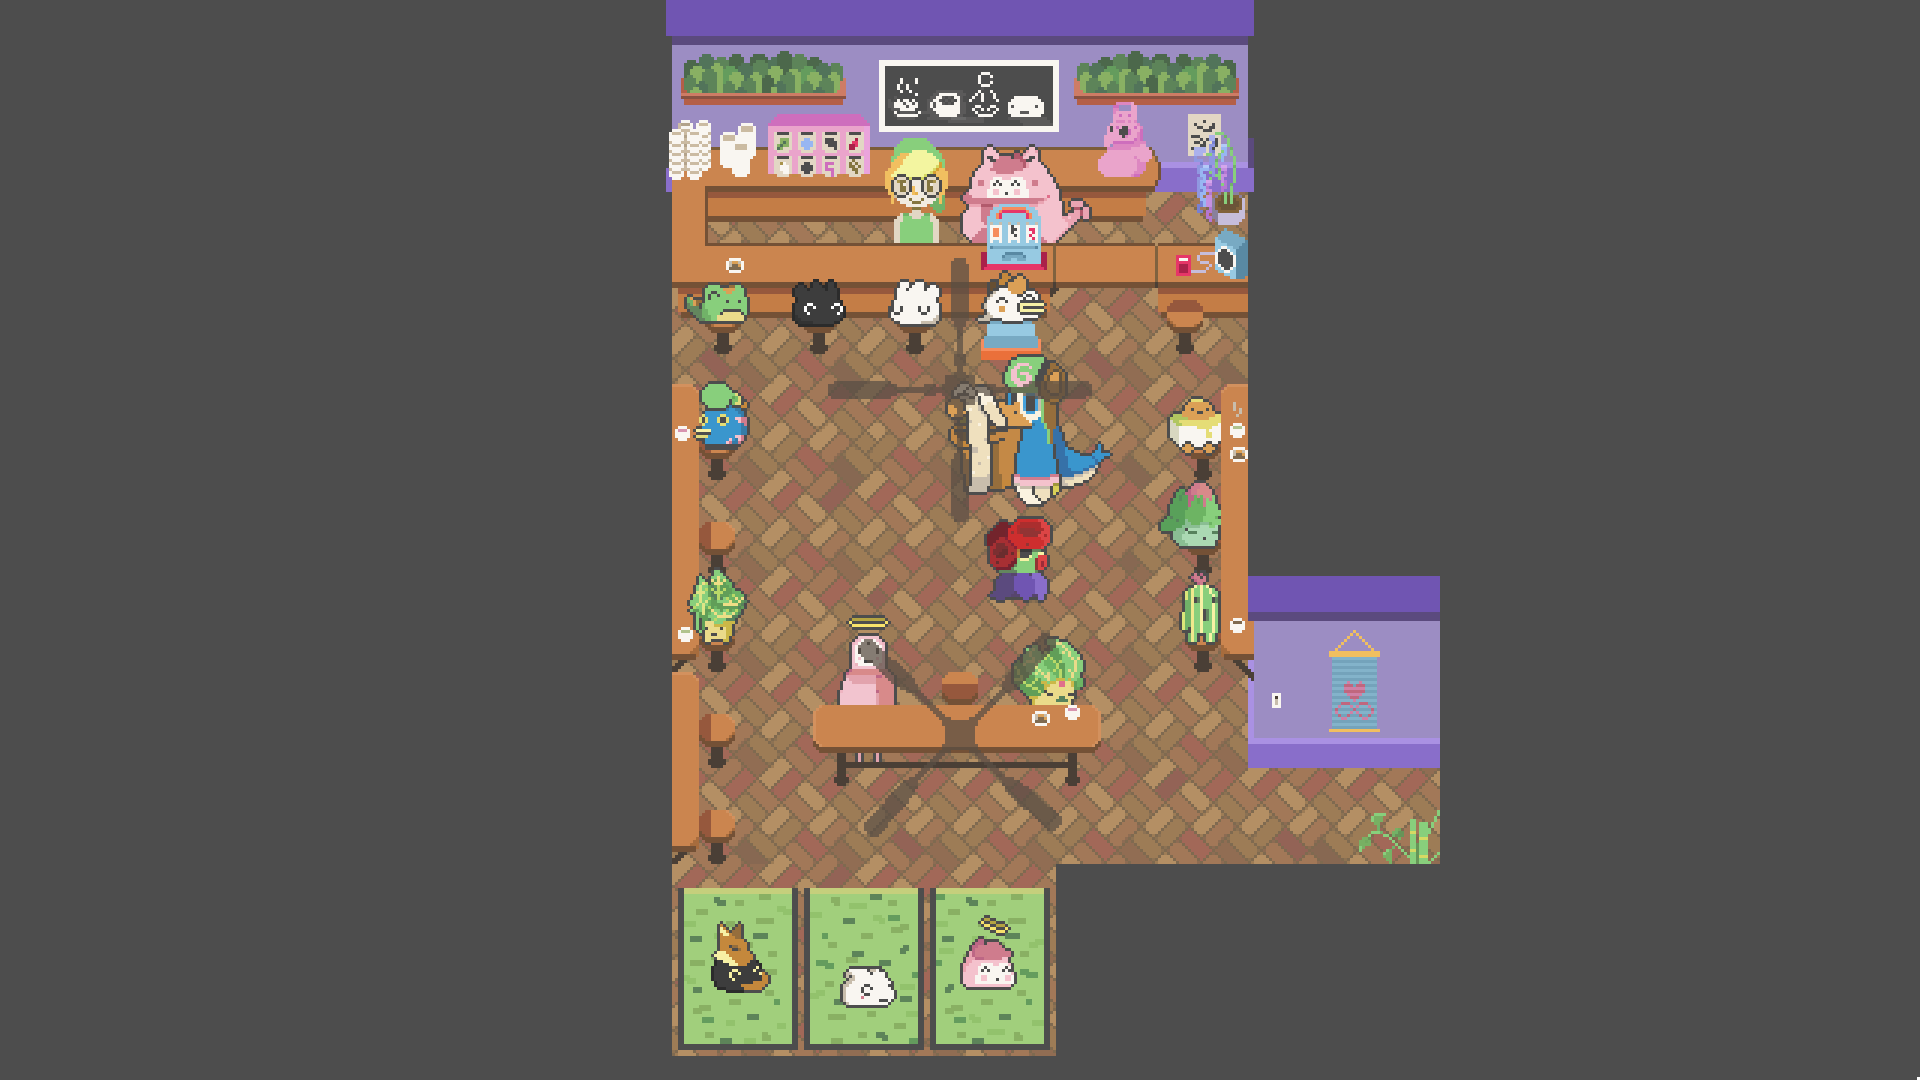 Help adultami run their shops and businesses once they head into the city. Here a pink toad cutie runs a tea & biscuit bar with yoga mats.